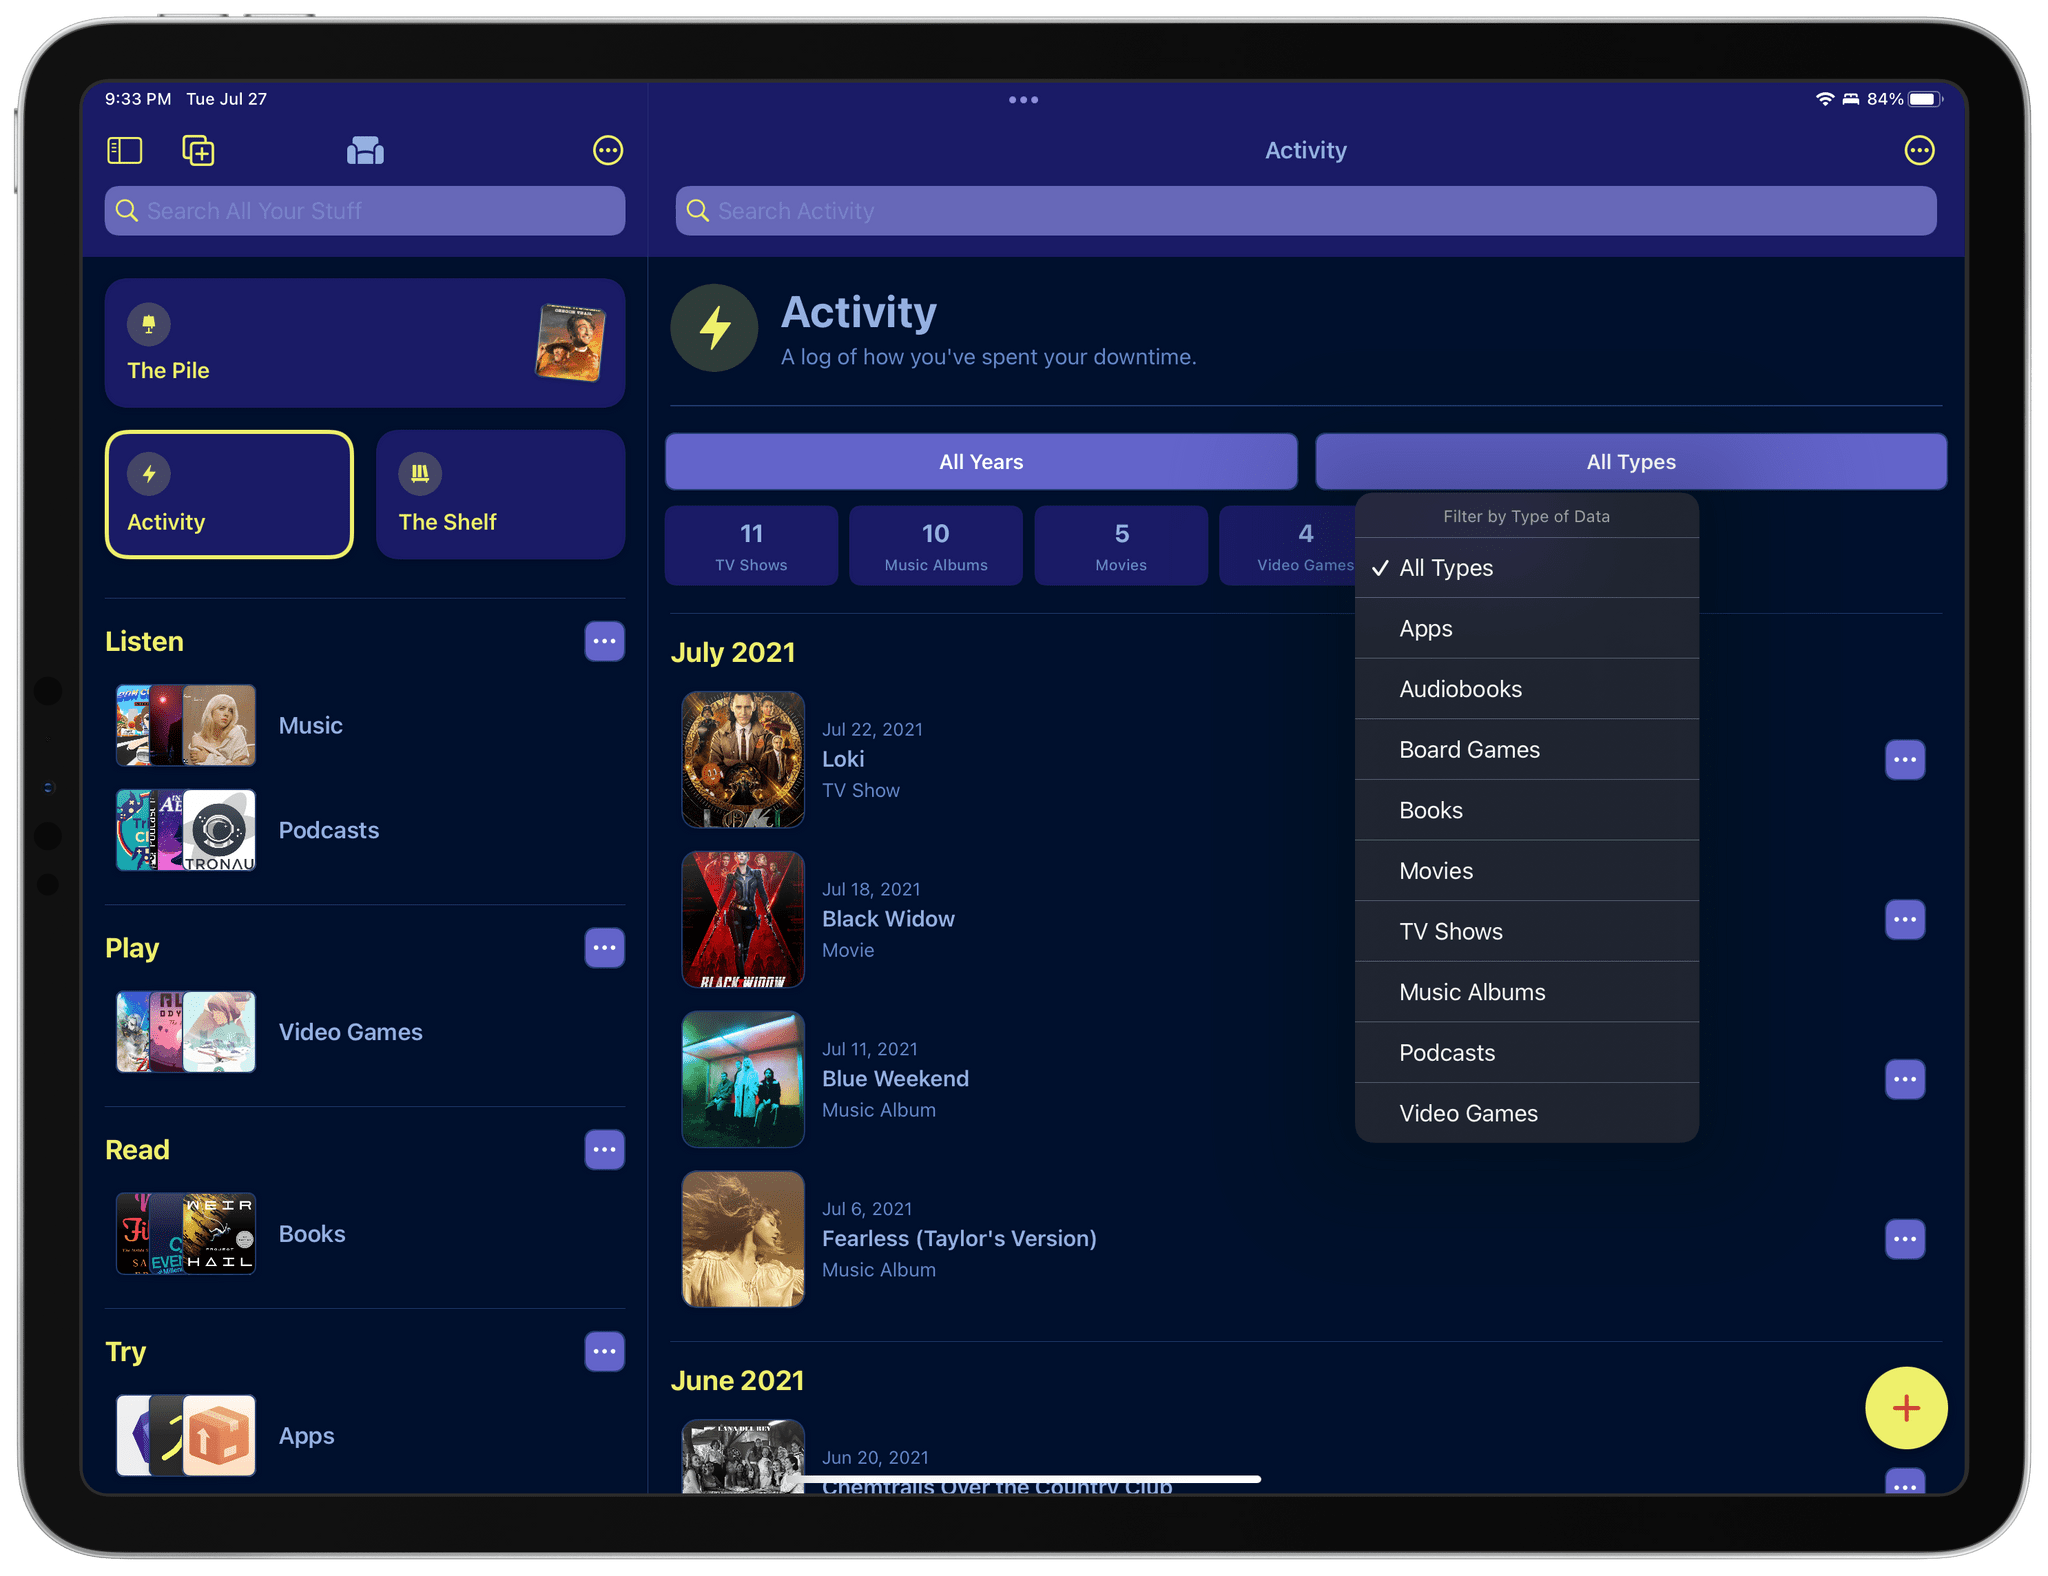 Activity has been overhauled to add stats and filtering functionality.